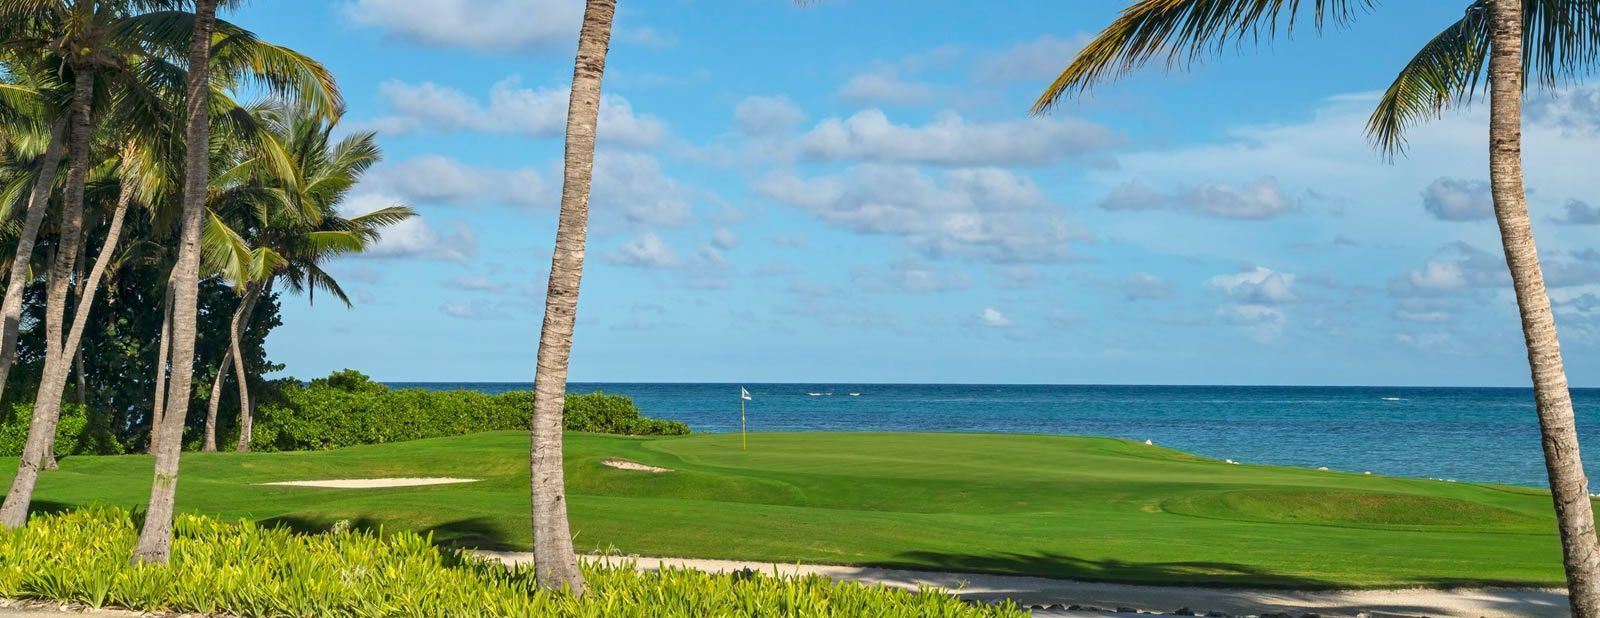 Westin Puntacana Resort & Club - Golf